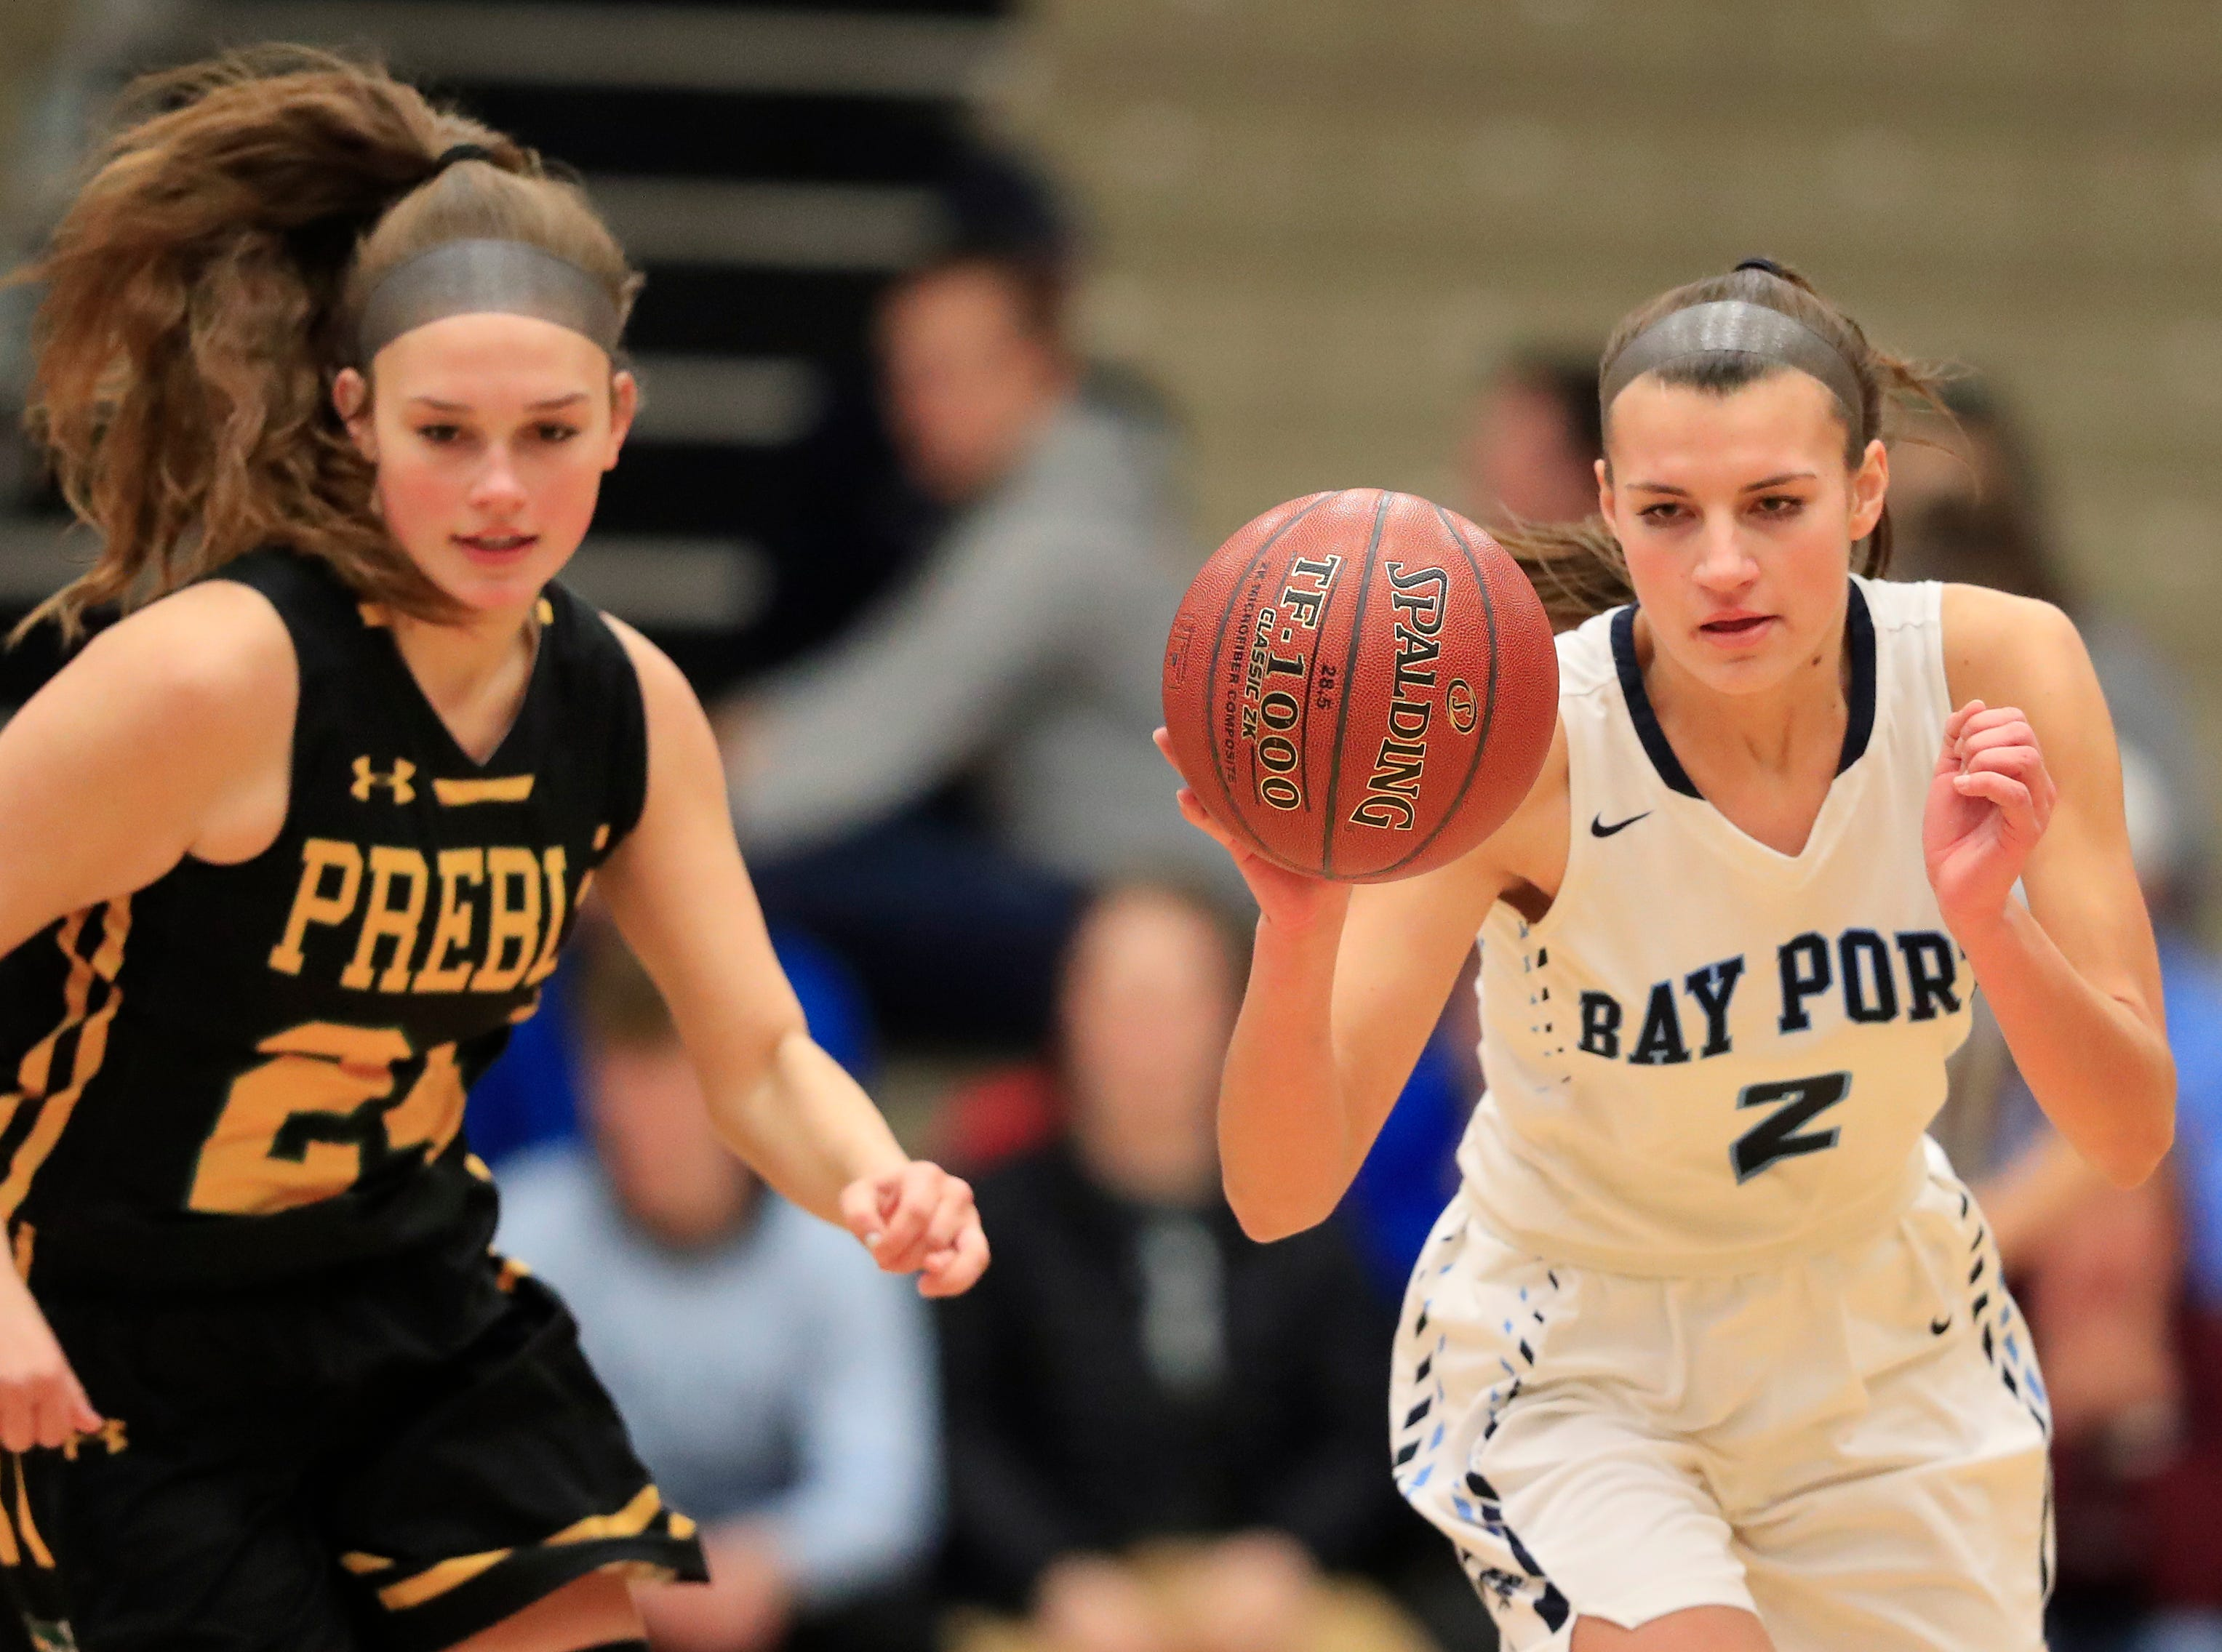 Bay Port's Grace Krause (2) steals the ball against Green Bay Preble's Ella Bialkowski (24) in an FRCC girls basketball game at Bay Port high school on Friday, February 8, 2019 in Suamico, Wis.